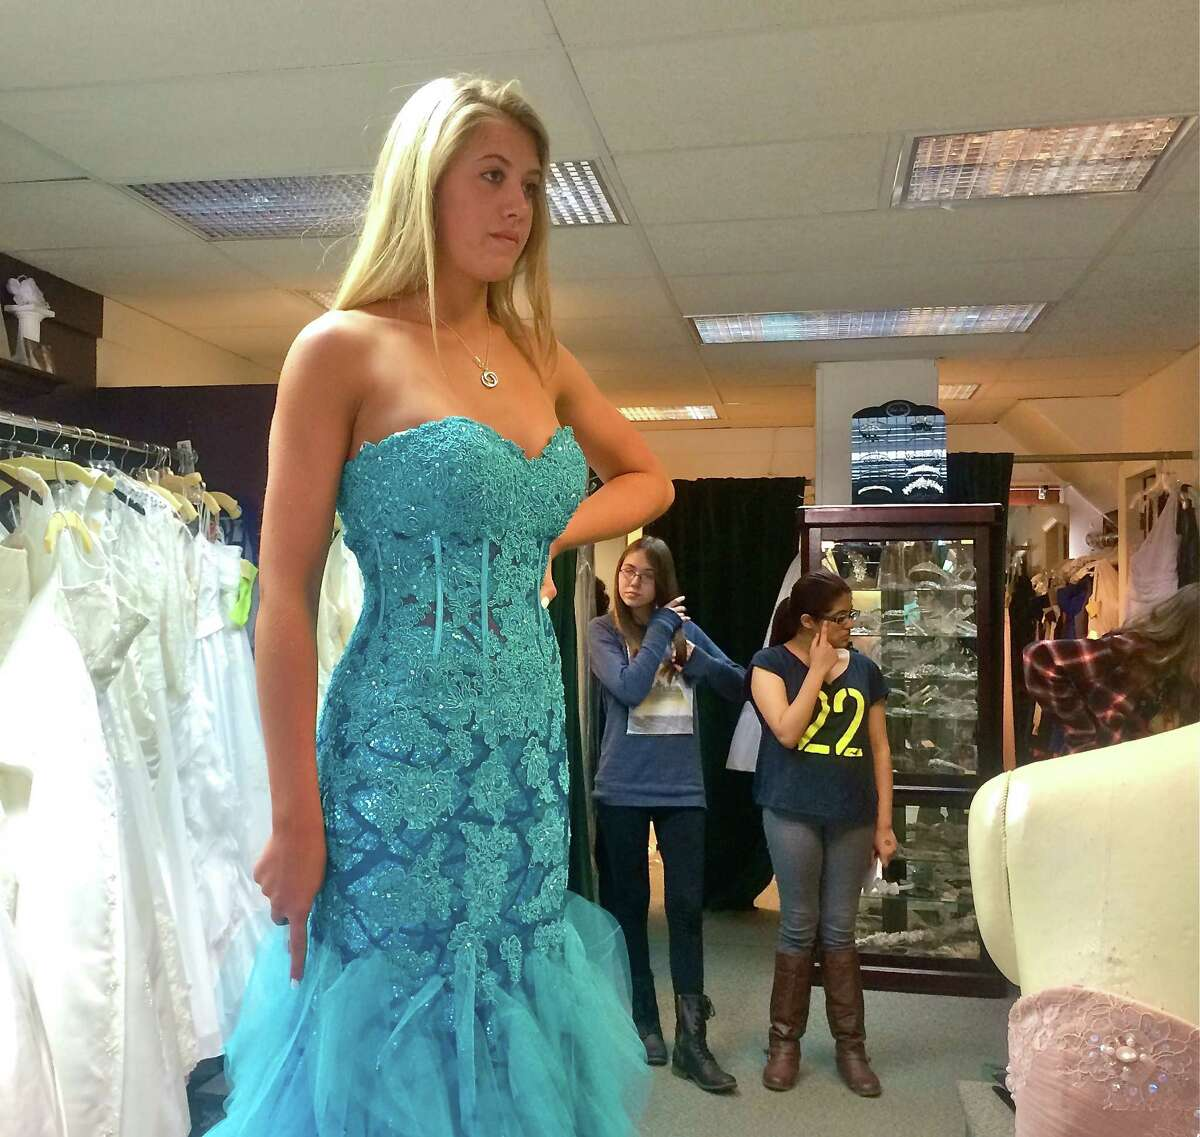 Mandy Thompson, a senior at New Fairfield HIgh School, tries on a mermaid-style gown at Occasions Bridal Shop in Bethel.